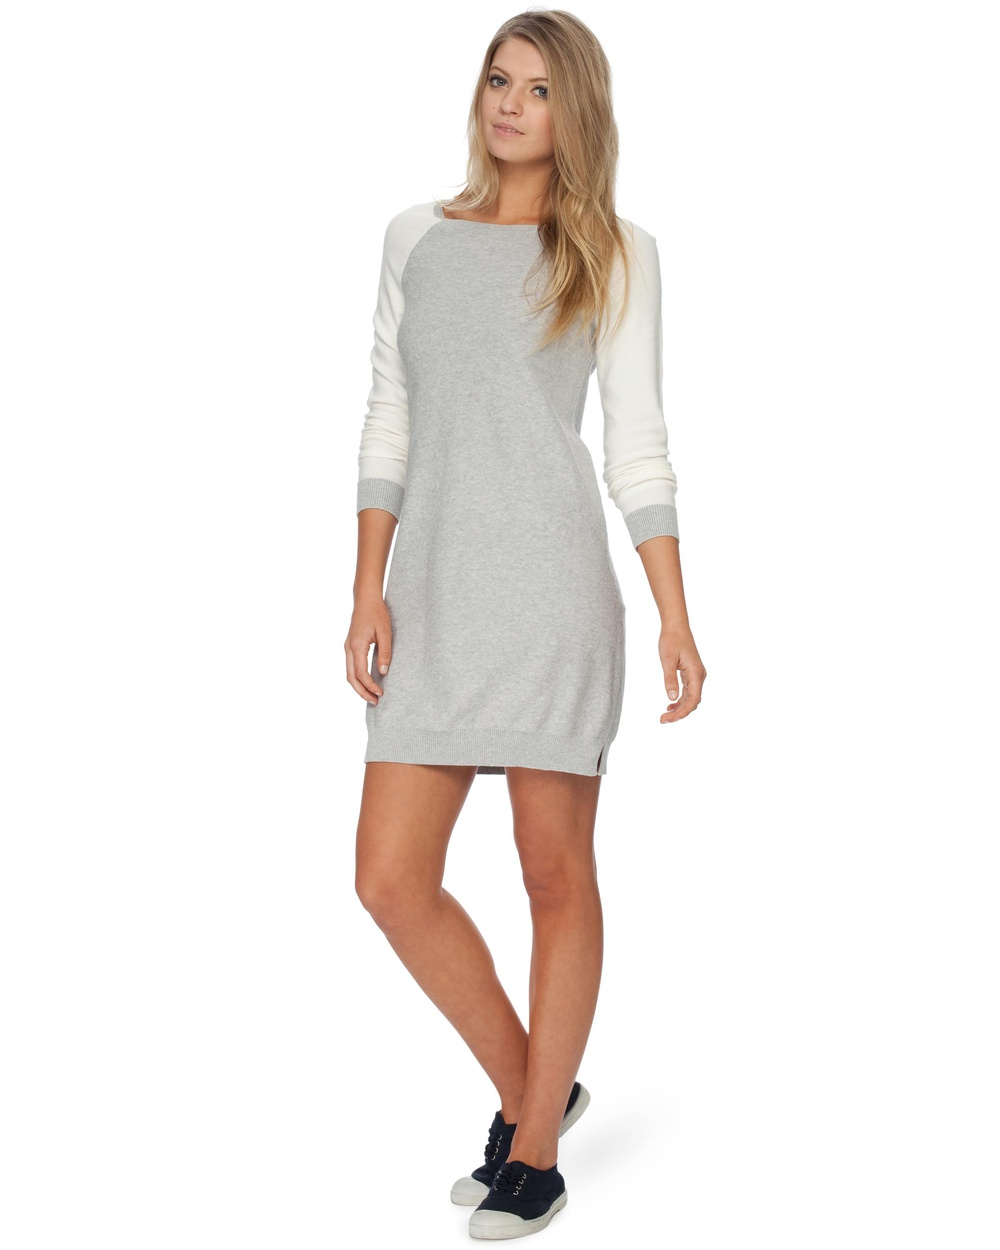 Smart casual clothes for mature women